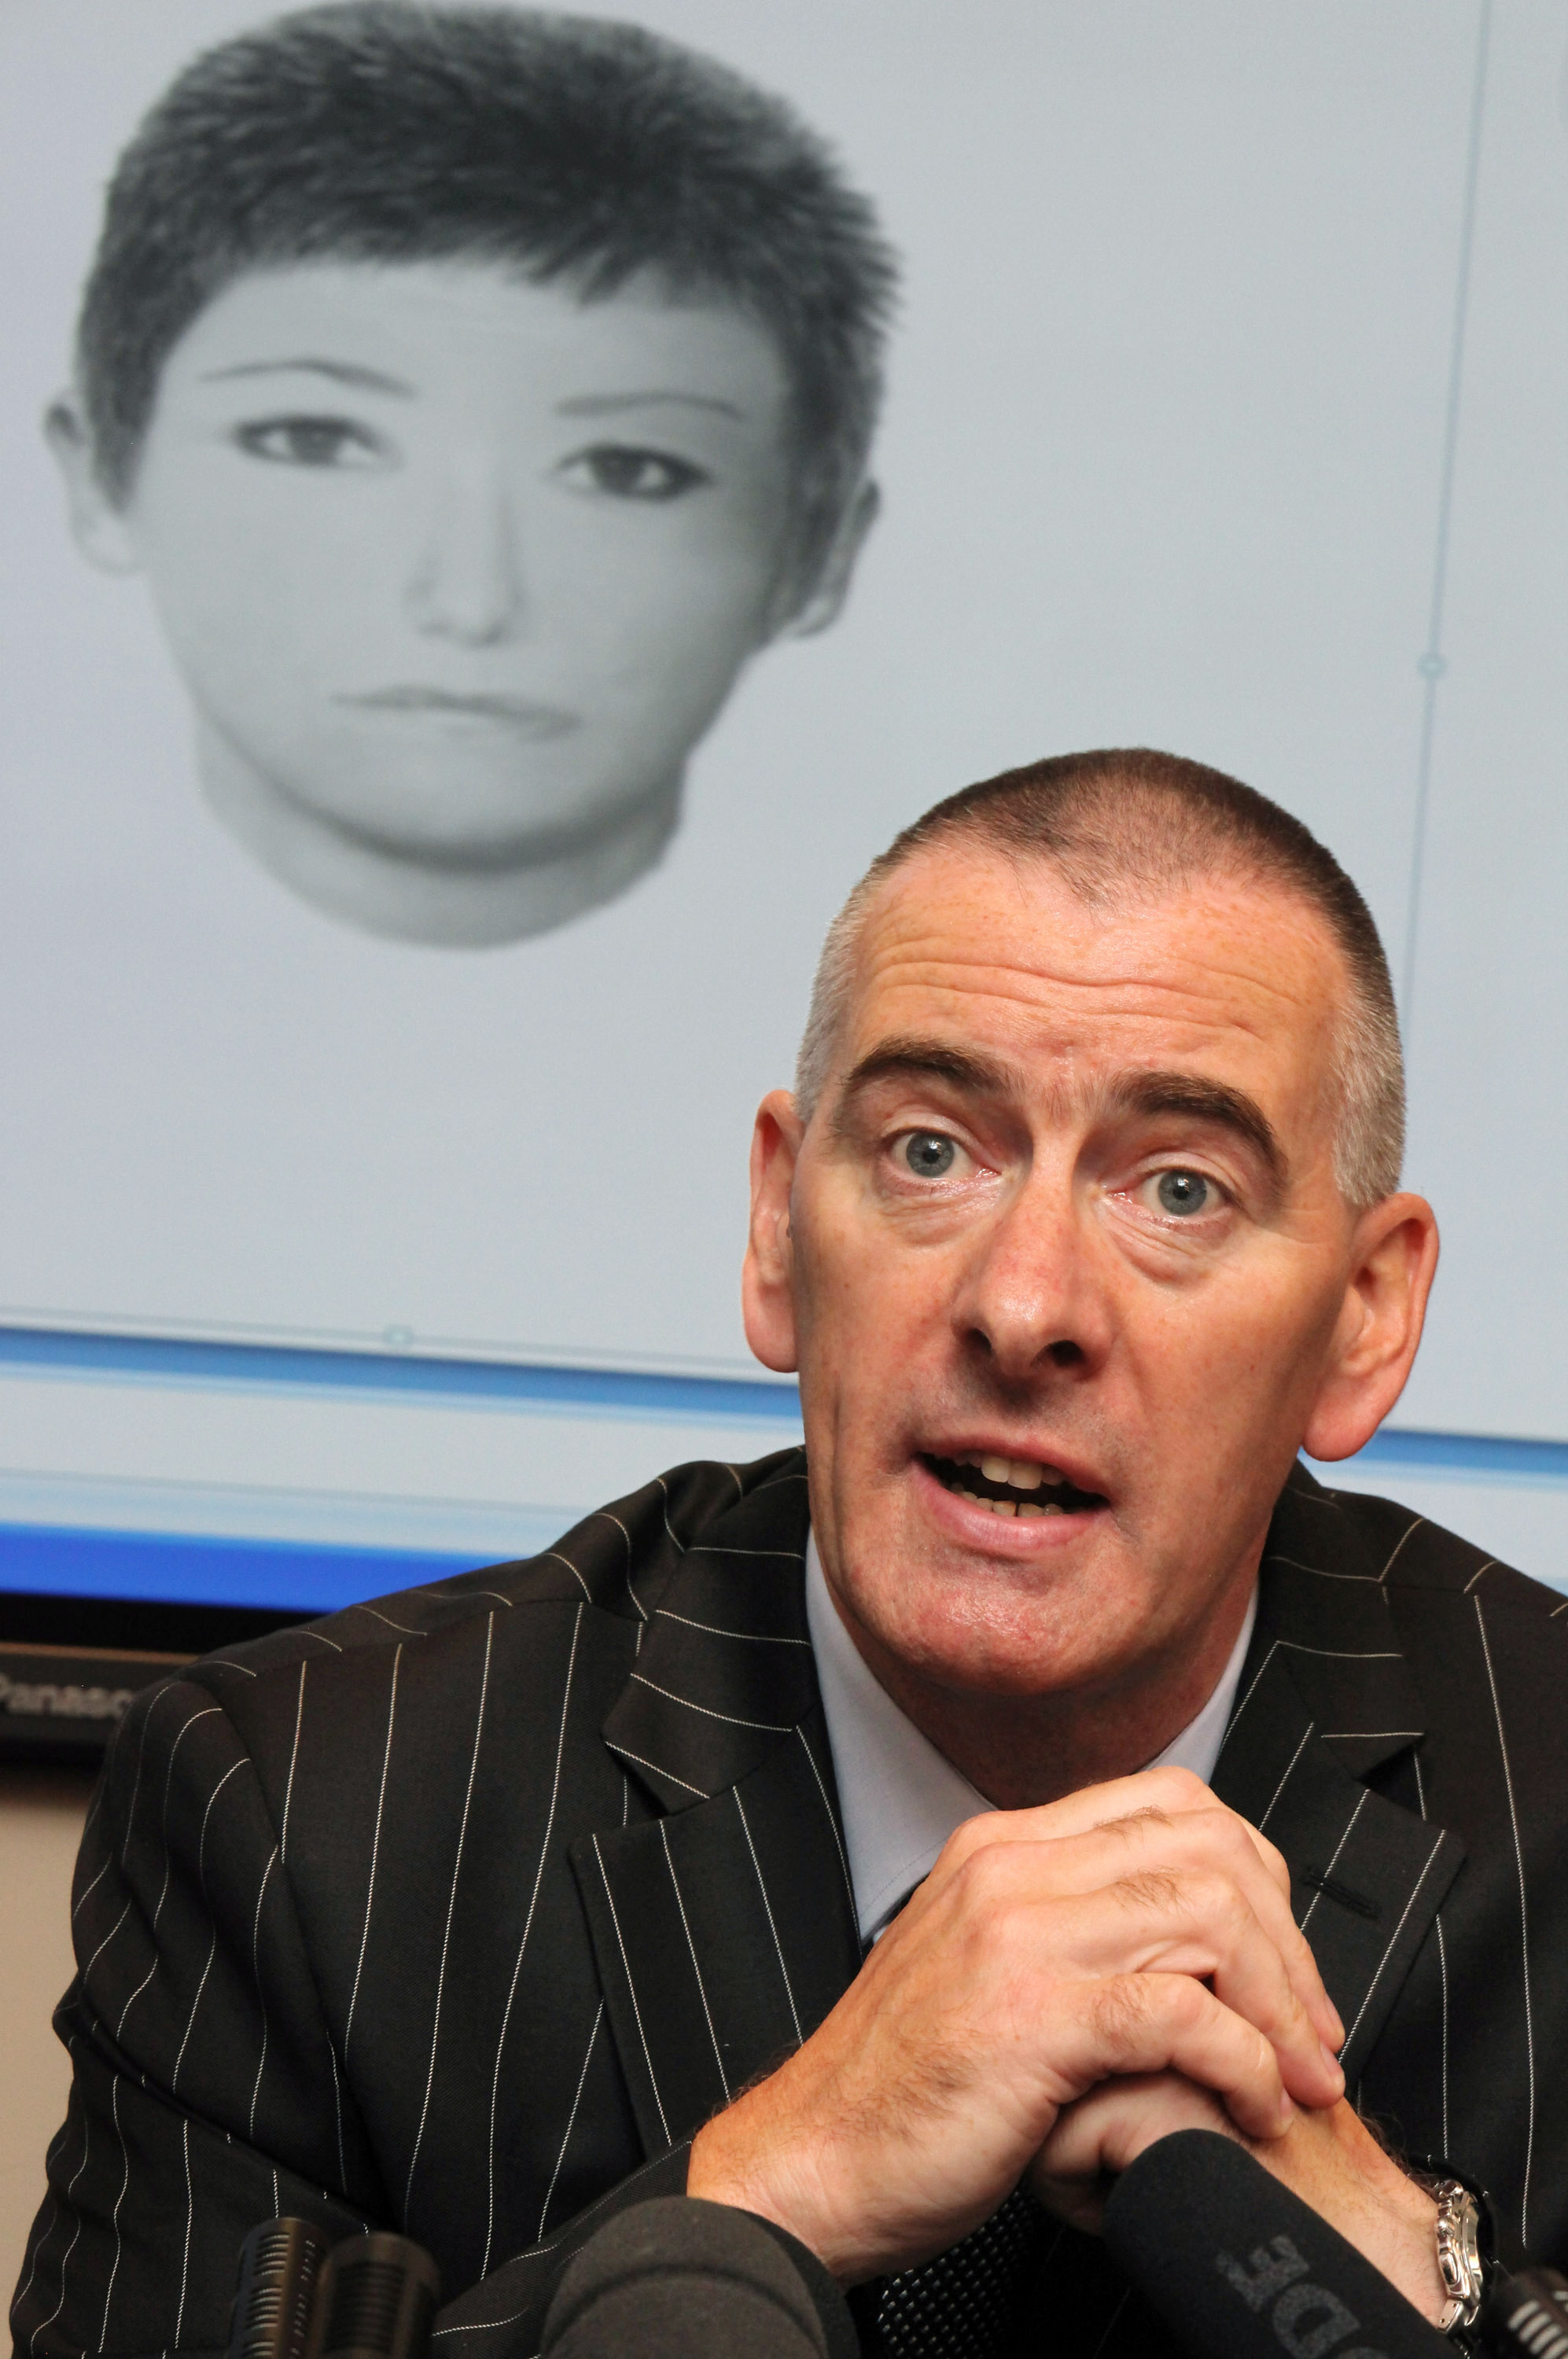 David Edgar says he believes that McCann is still alive (Source: Getty Images)